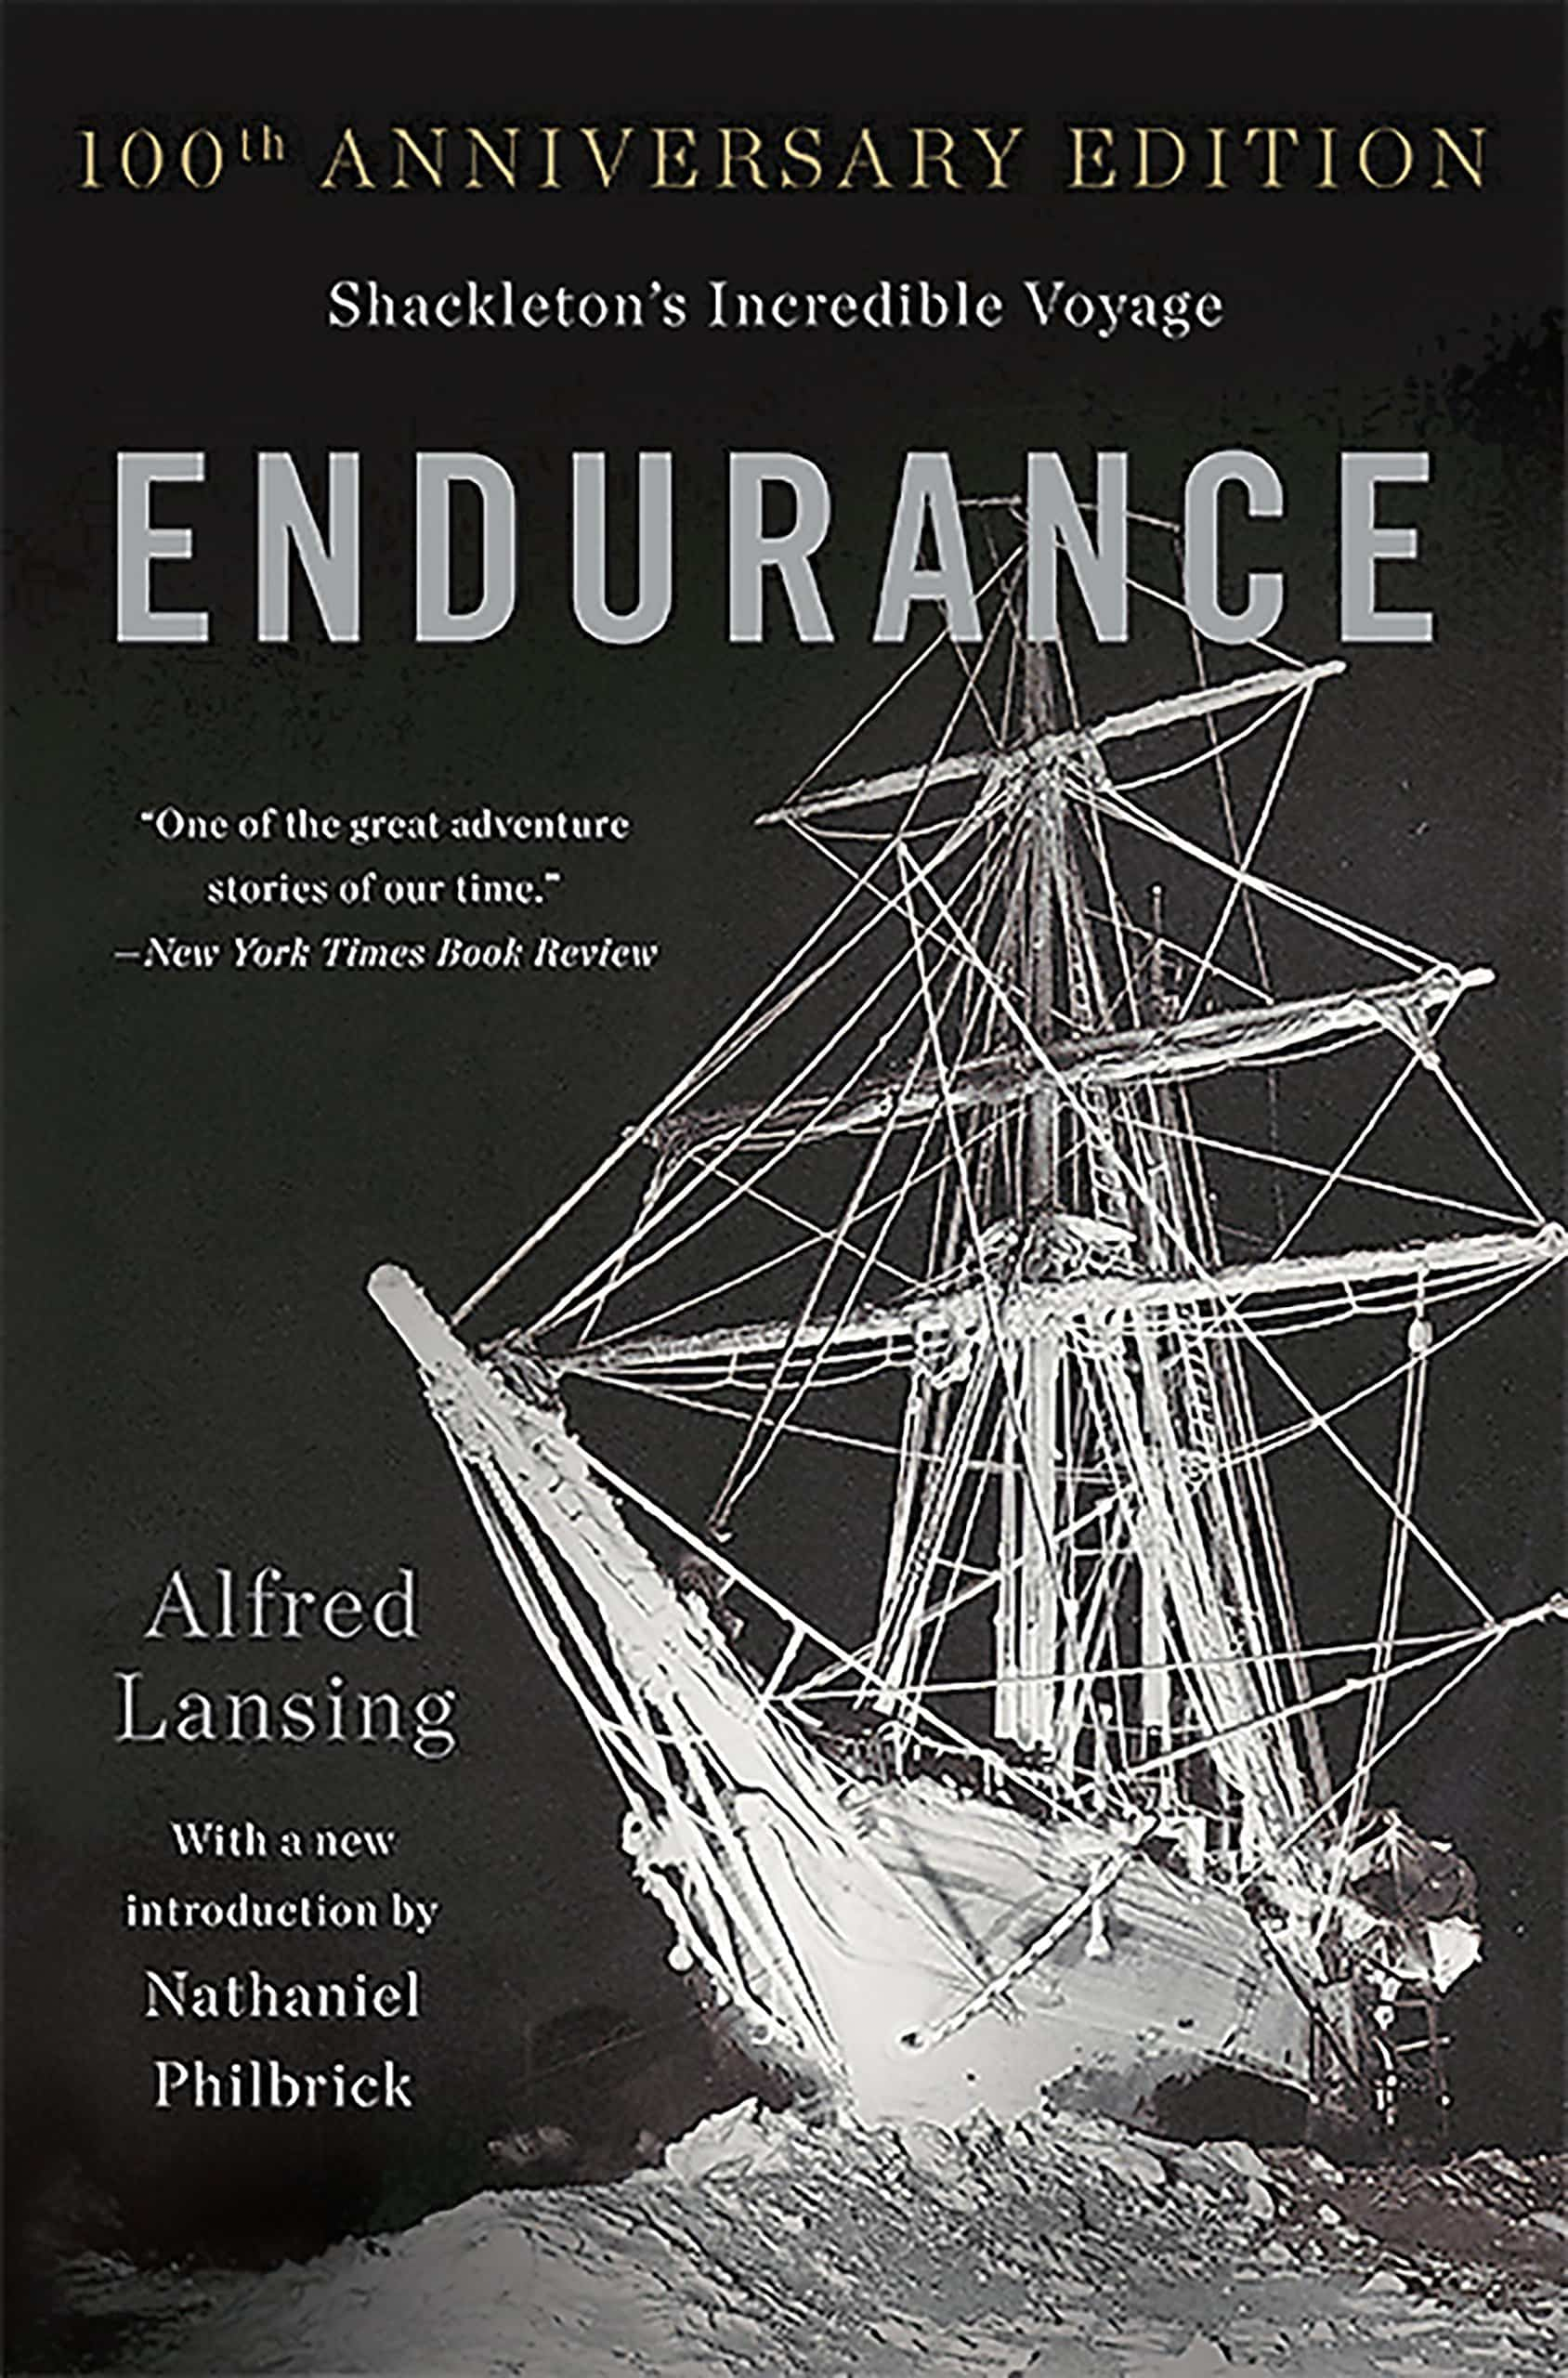 The cover of Endurance